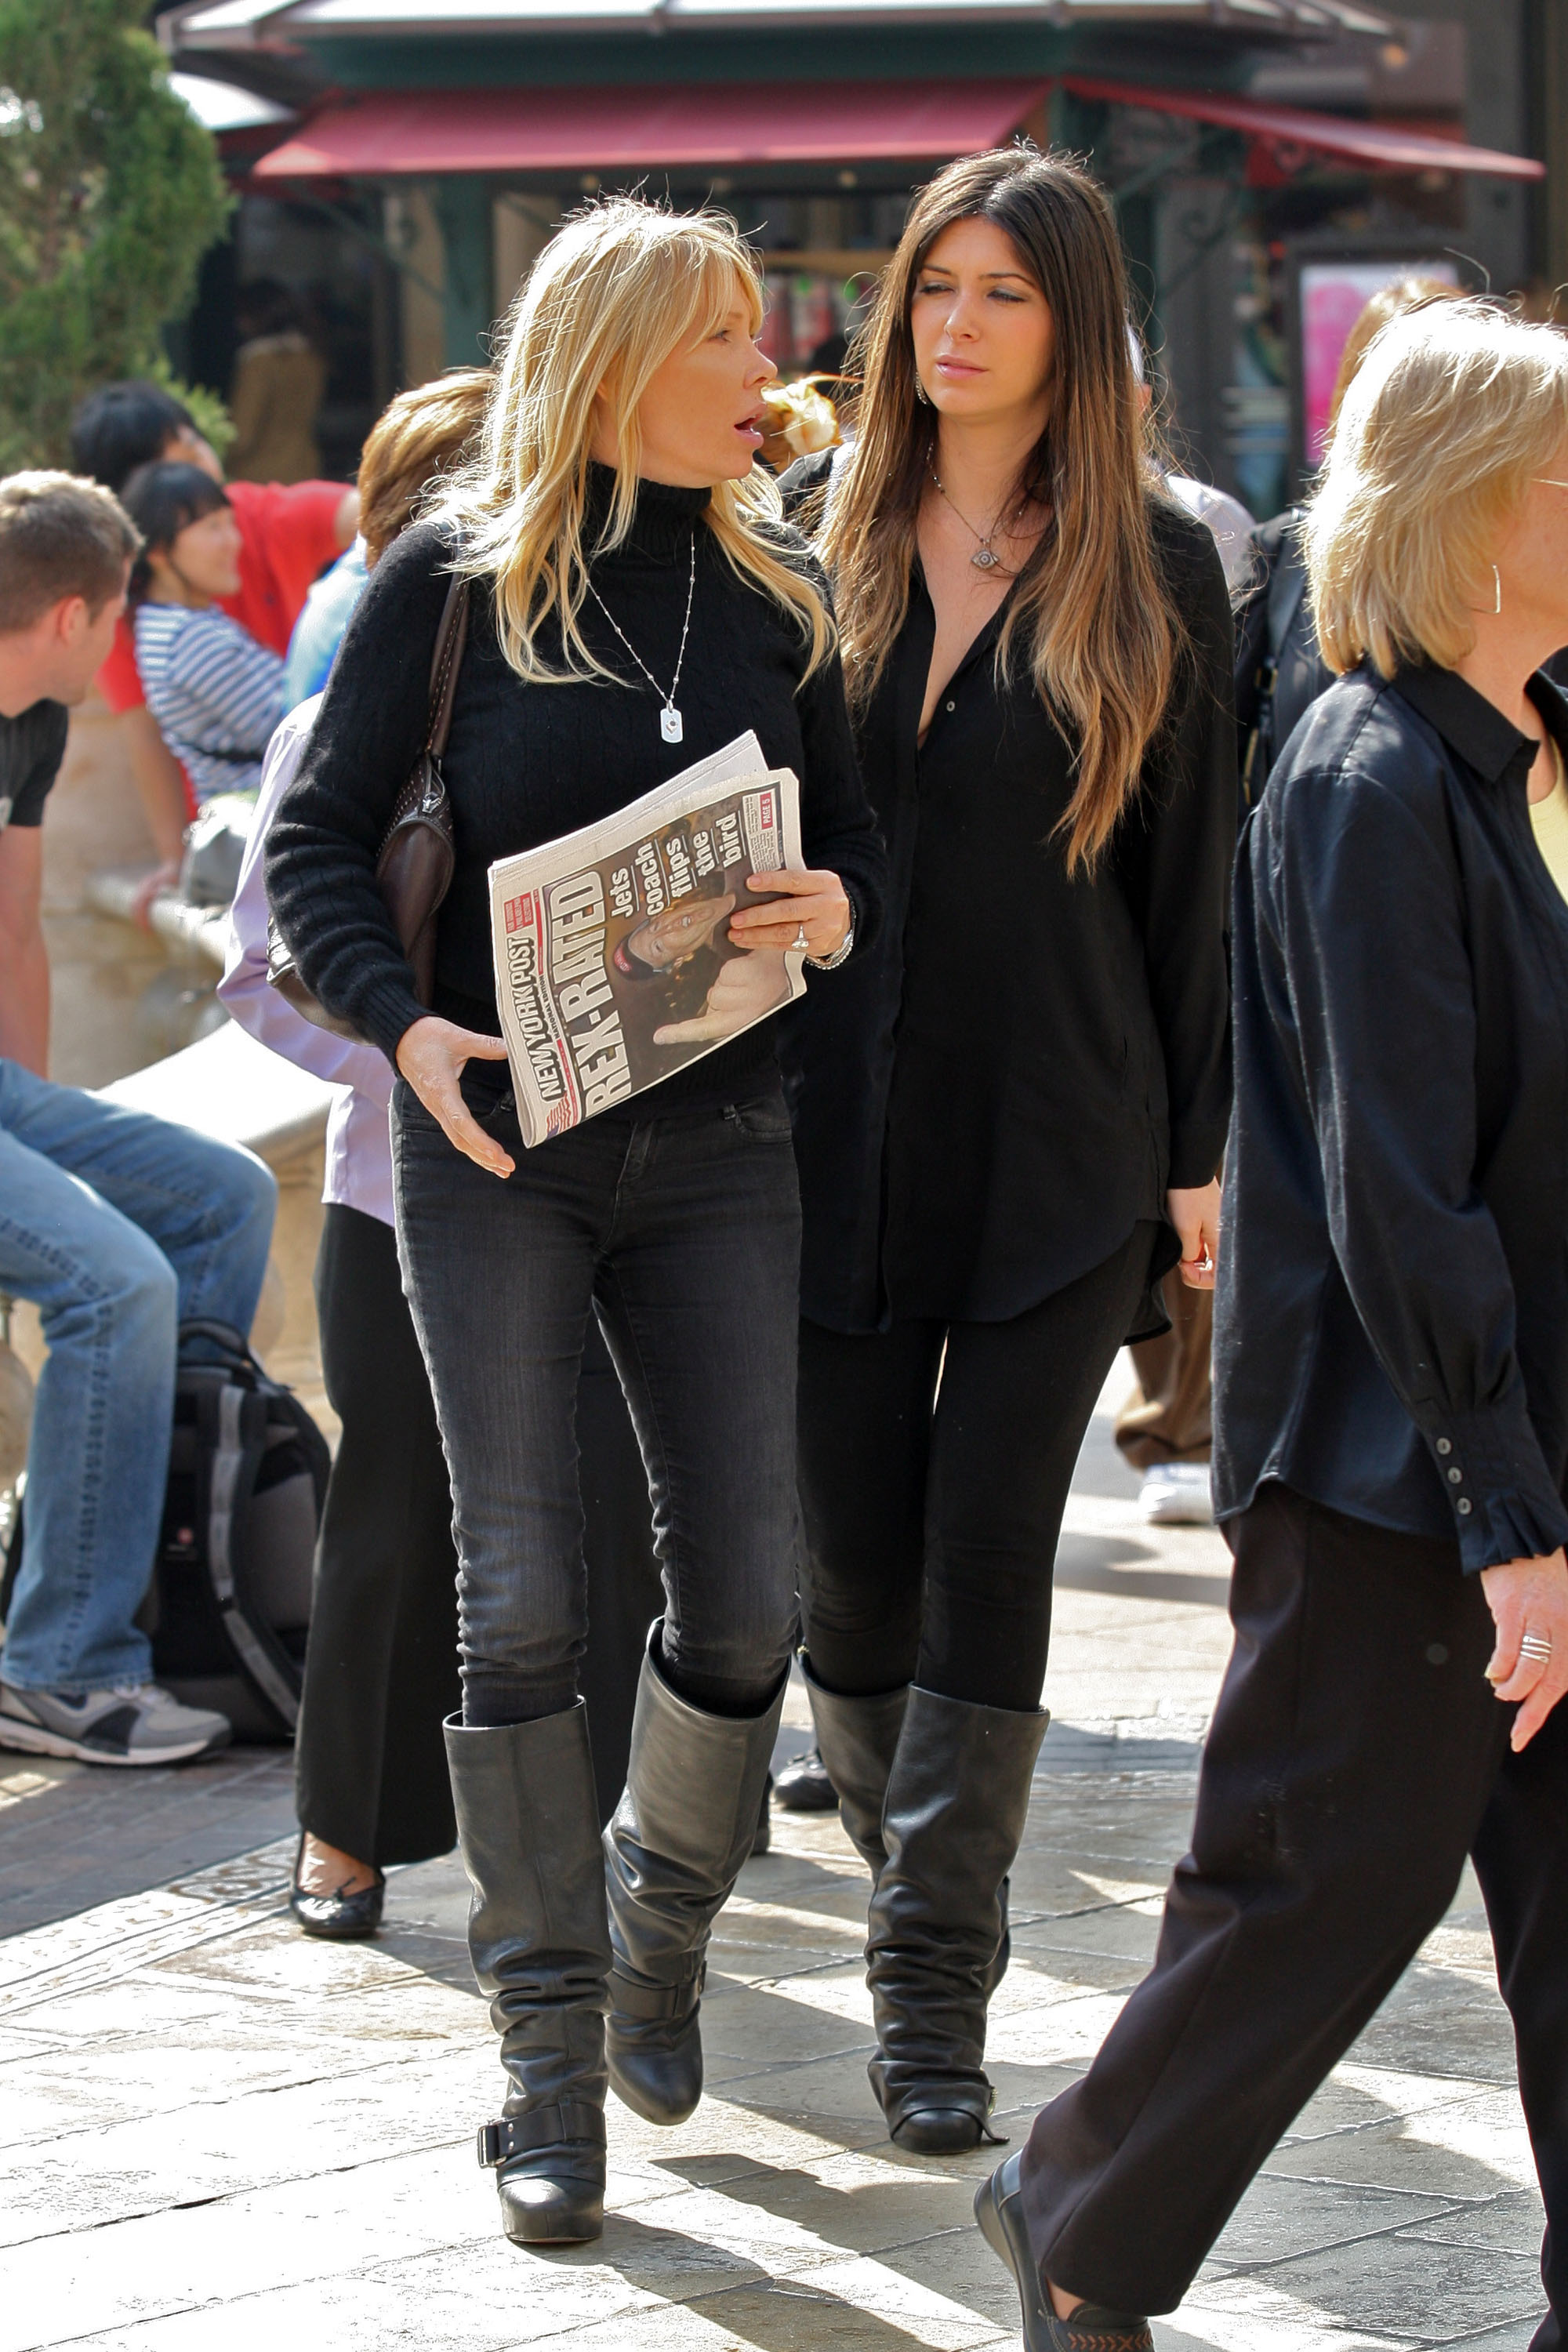 24839_celebrity-paradise.com-The_Elder-Brittny_Gastineau_2010-02-01_-_out_shopping_in_Hollywood_468_122_175lo.jpg